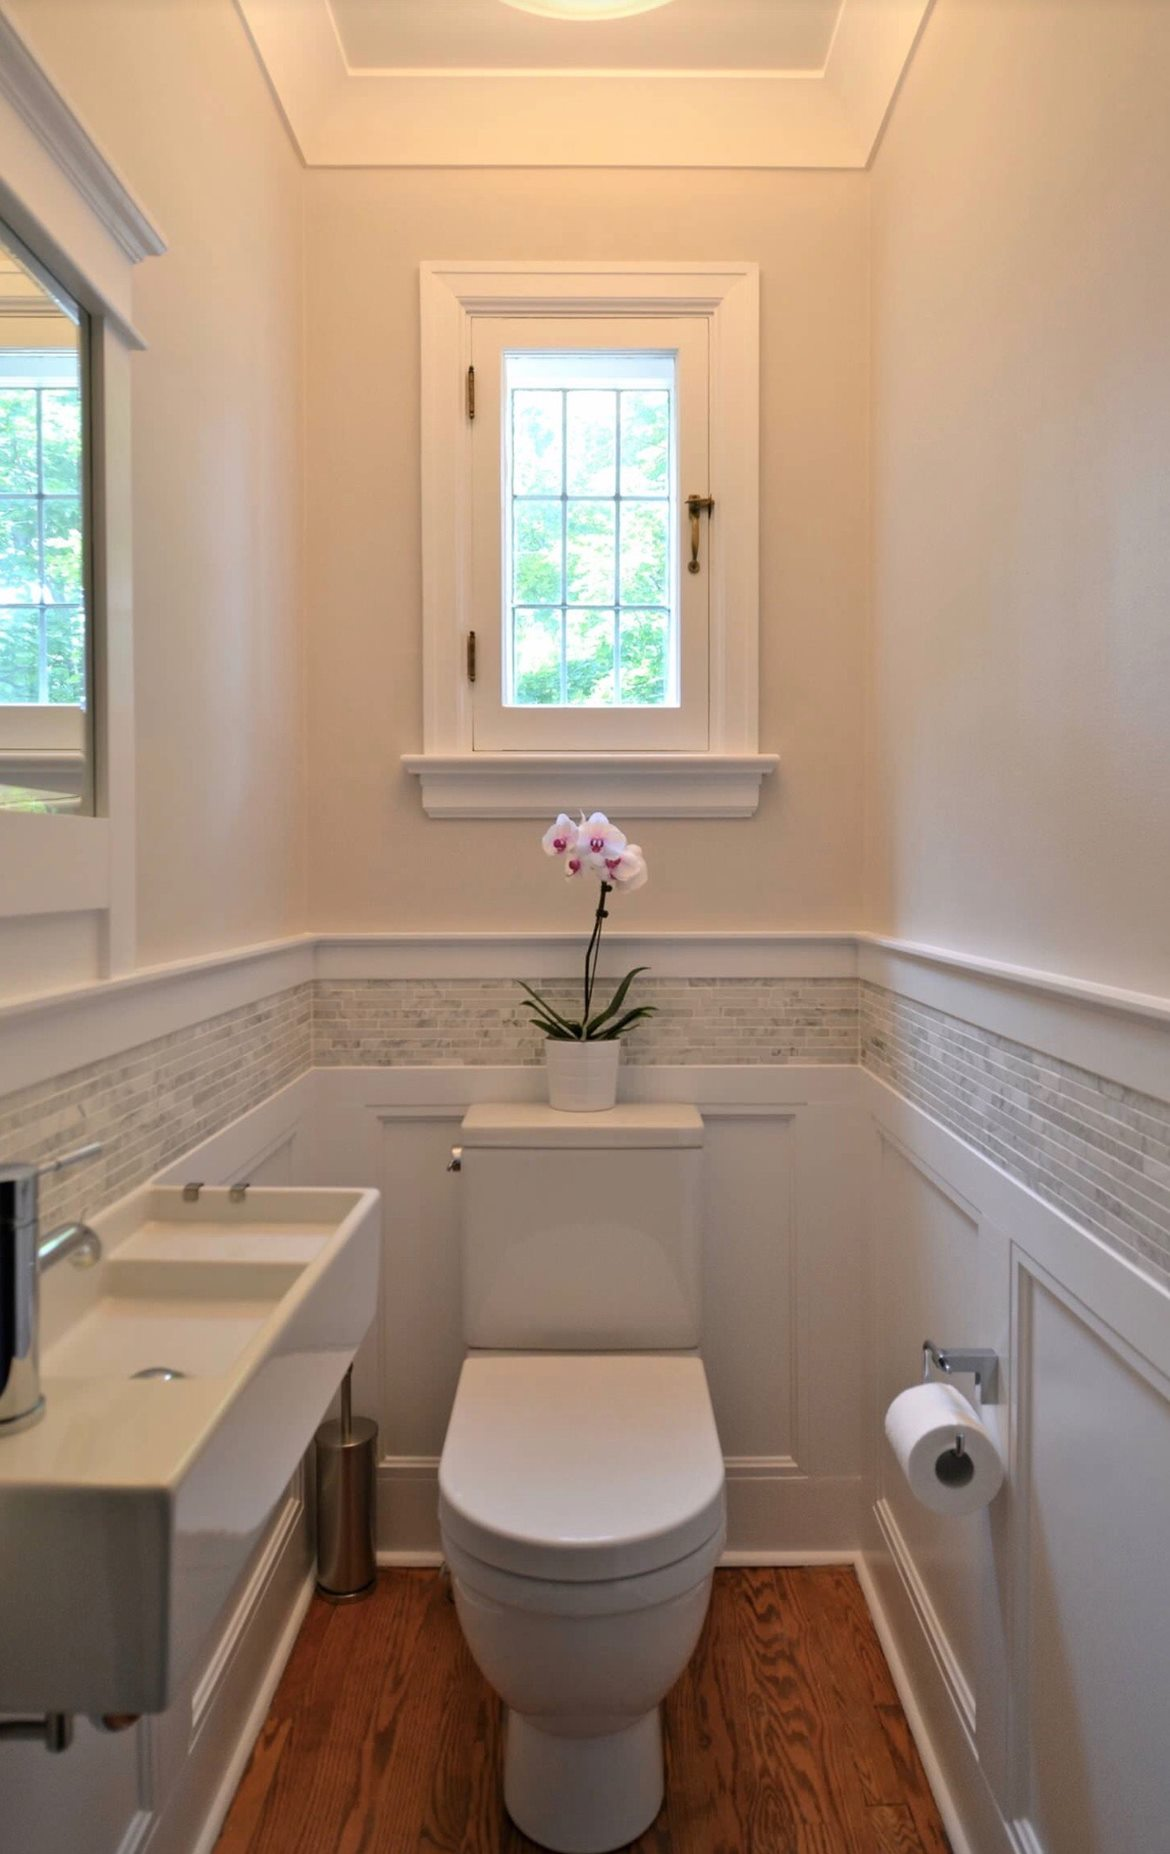 Bathroom Remodel Queens,Bathroom renovations Queens NY